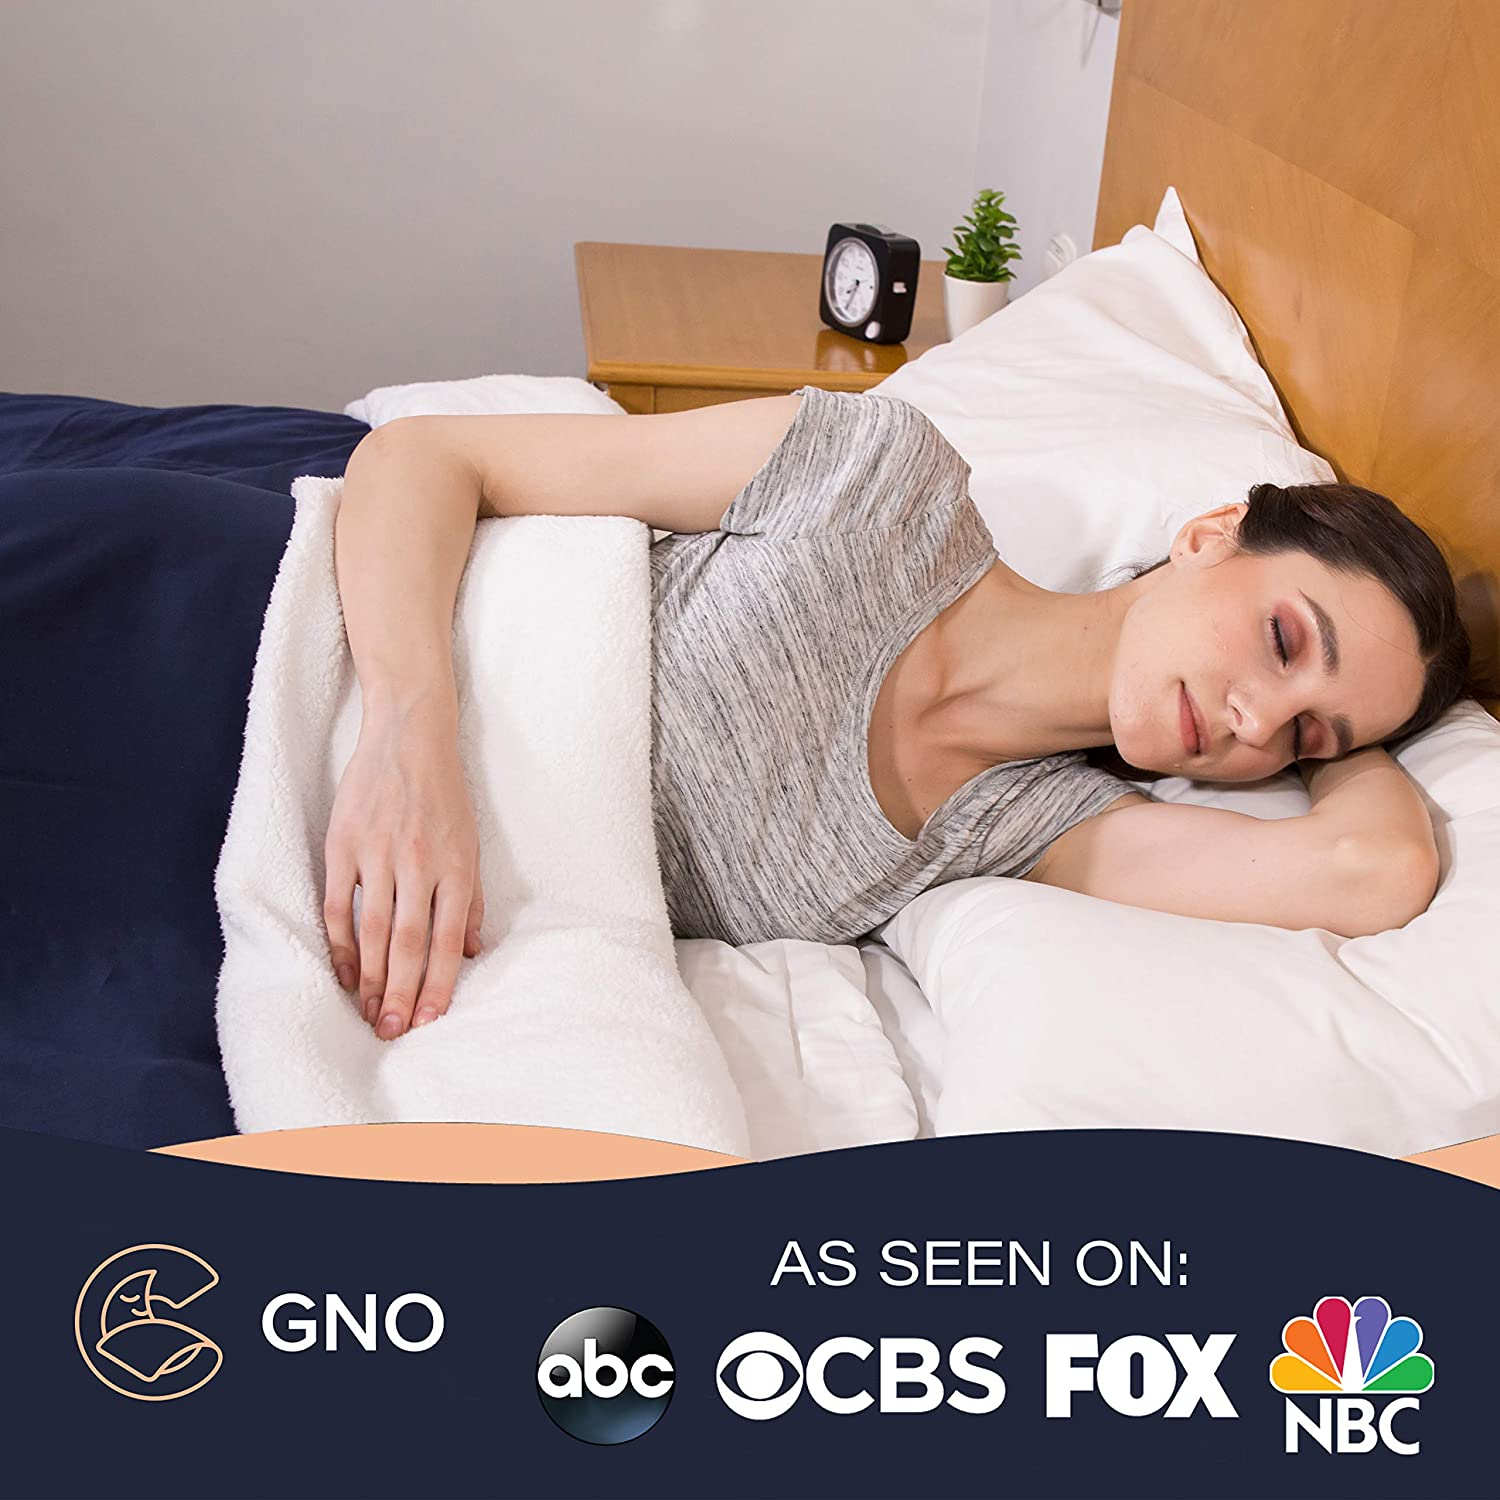 For Children That Suffer From Anxiety GnO Weighted Blanket for Kids /& Cool Natural Bamboo Duvet Cover Dark Gray 100/% Cooling Organic Cotton Gravity Blanket /& Glass Beads PTSD 7 Lbs 41x60 Twin Size ADHD Autism Insomnia or Stress